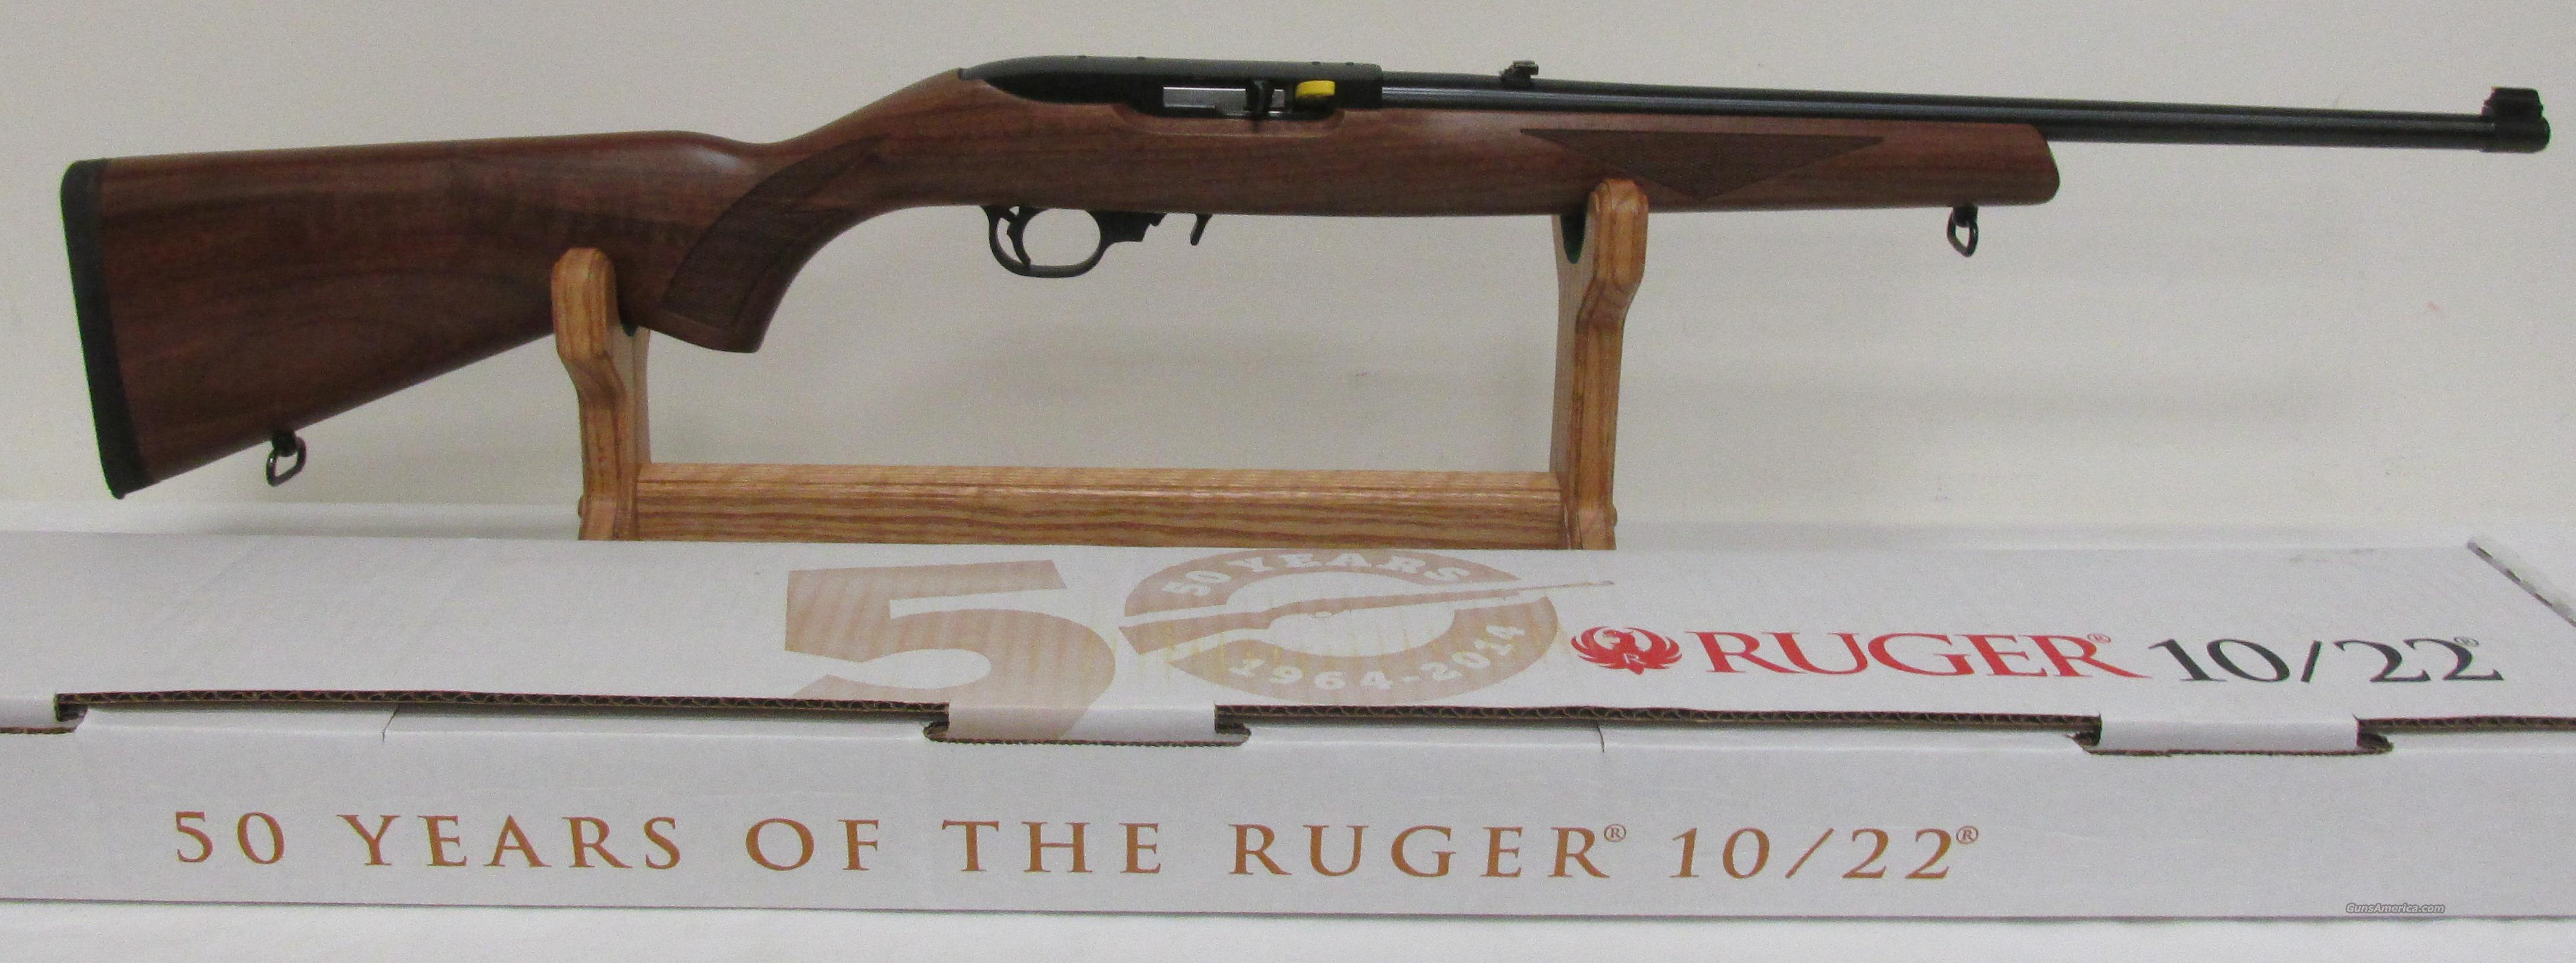 Ruger Sporter 10/22 American Walnut 22LR $340 Beautiful Wood (50th Anniversary)  Guns > Rifles > Ruger Rifles > 10-22